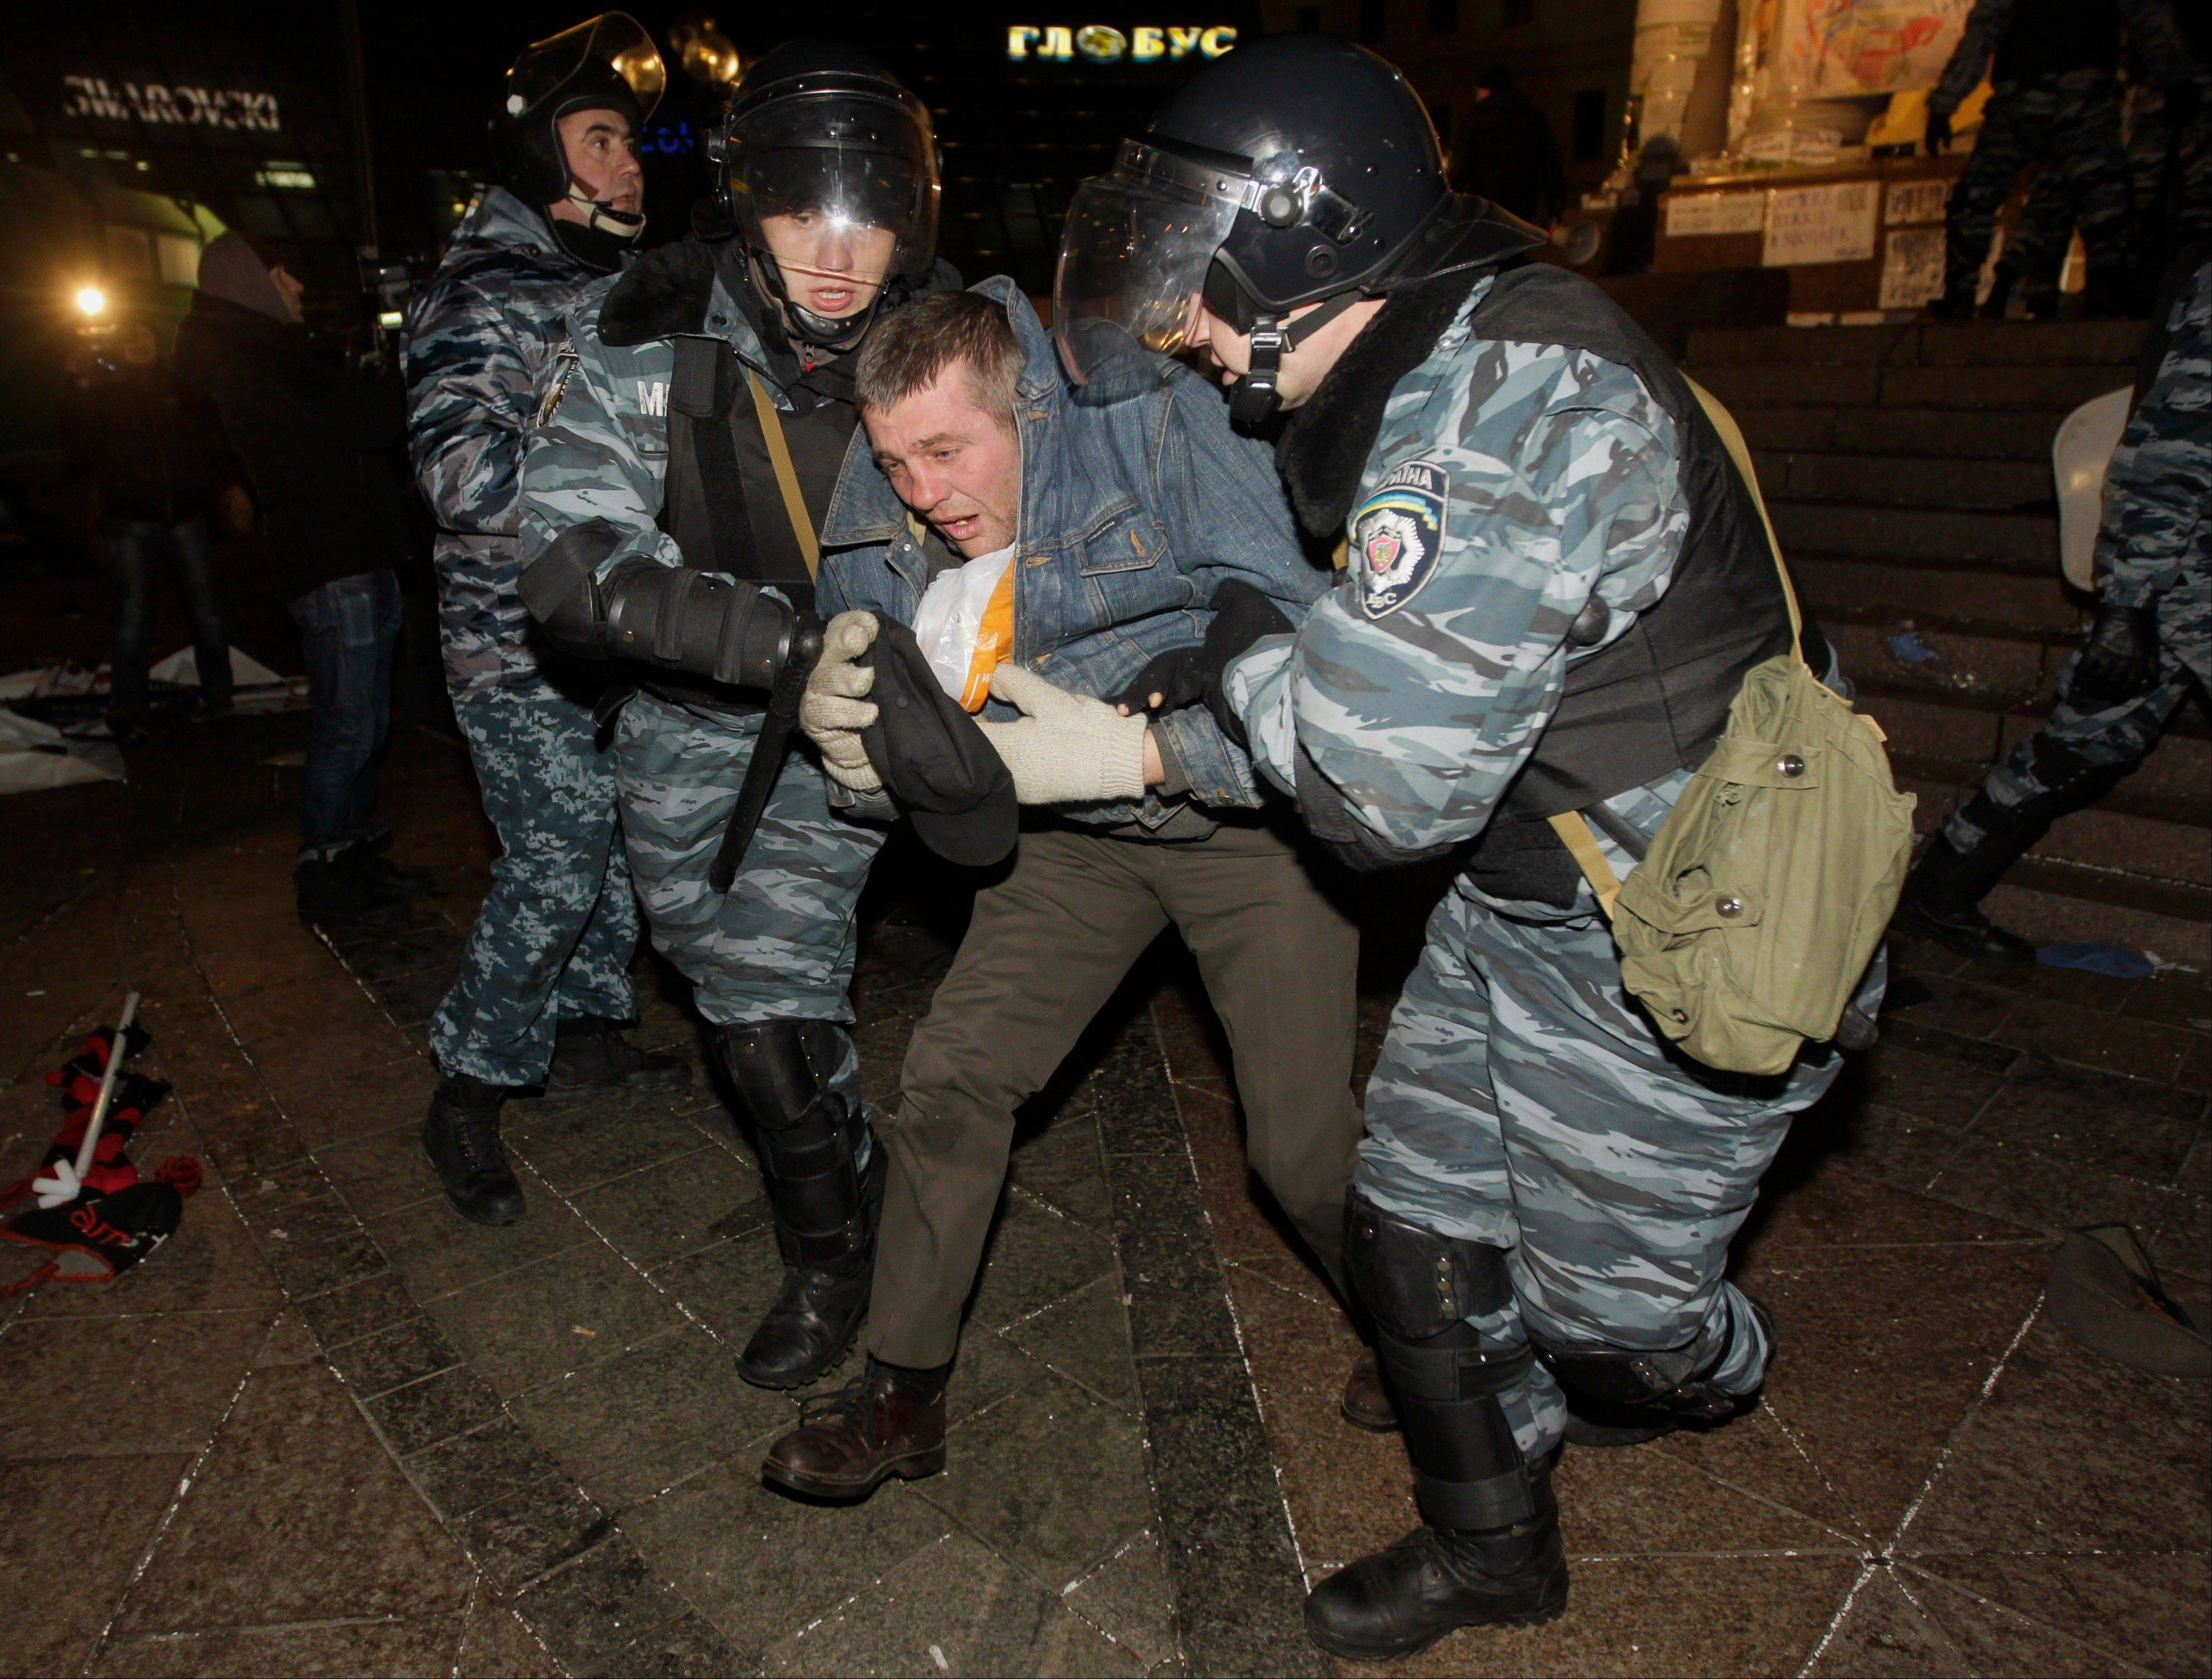 Ukrainian riot police officers detain an activist Saturday during a rally demanding the resignation of President Viktor Yanukovych, at the Independence Square in downtown Kiev, Ukraine.